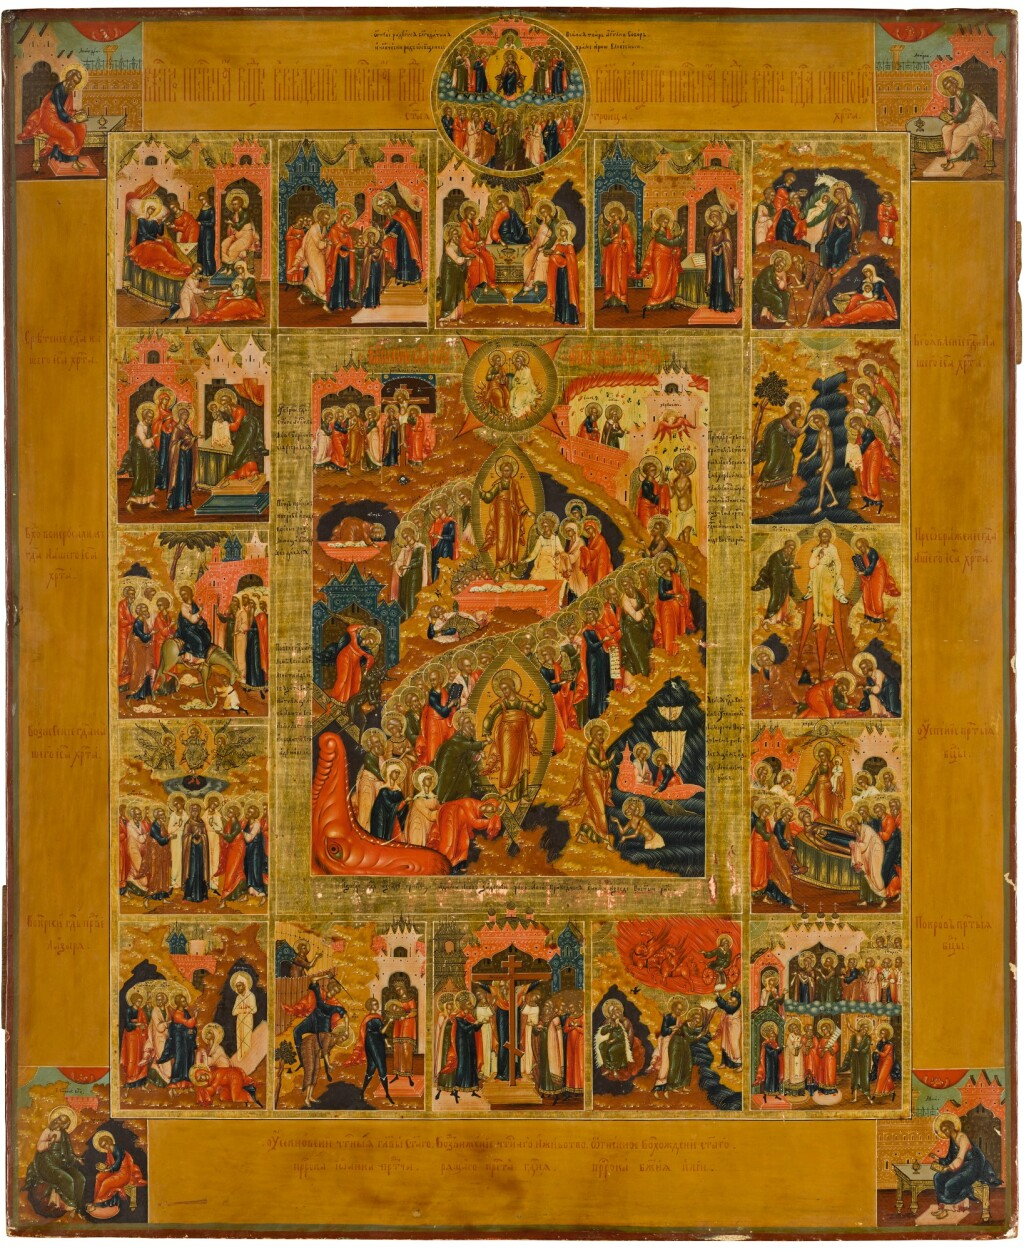 A FEASTDAY ICON, RUSSIAN, 19TH CENTURY